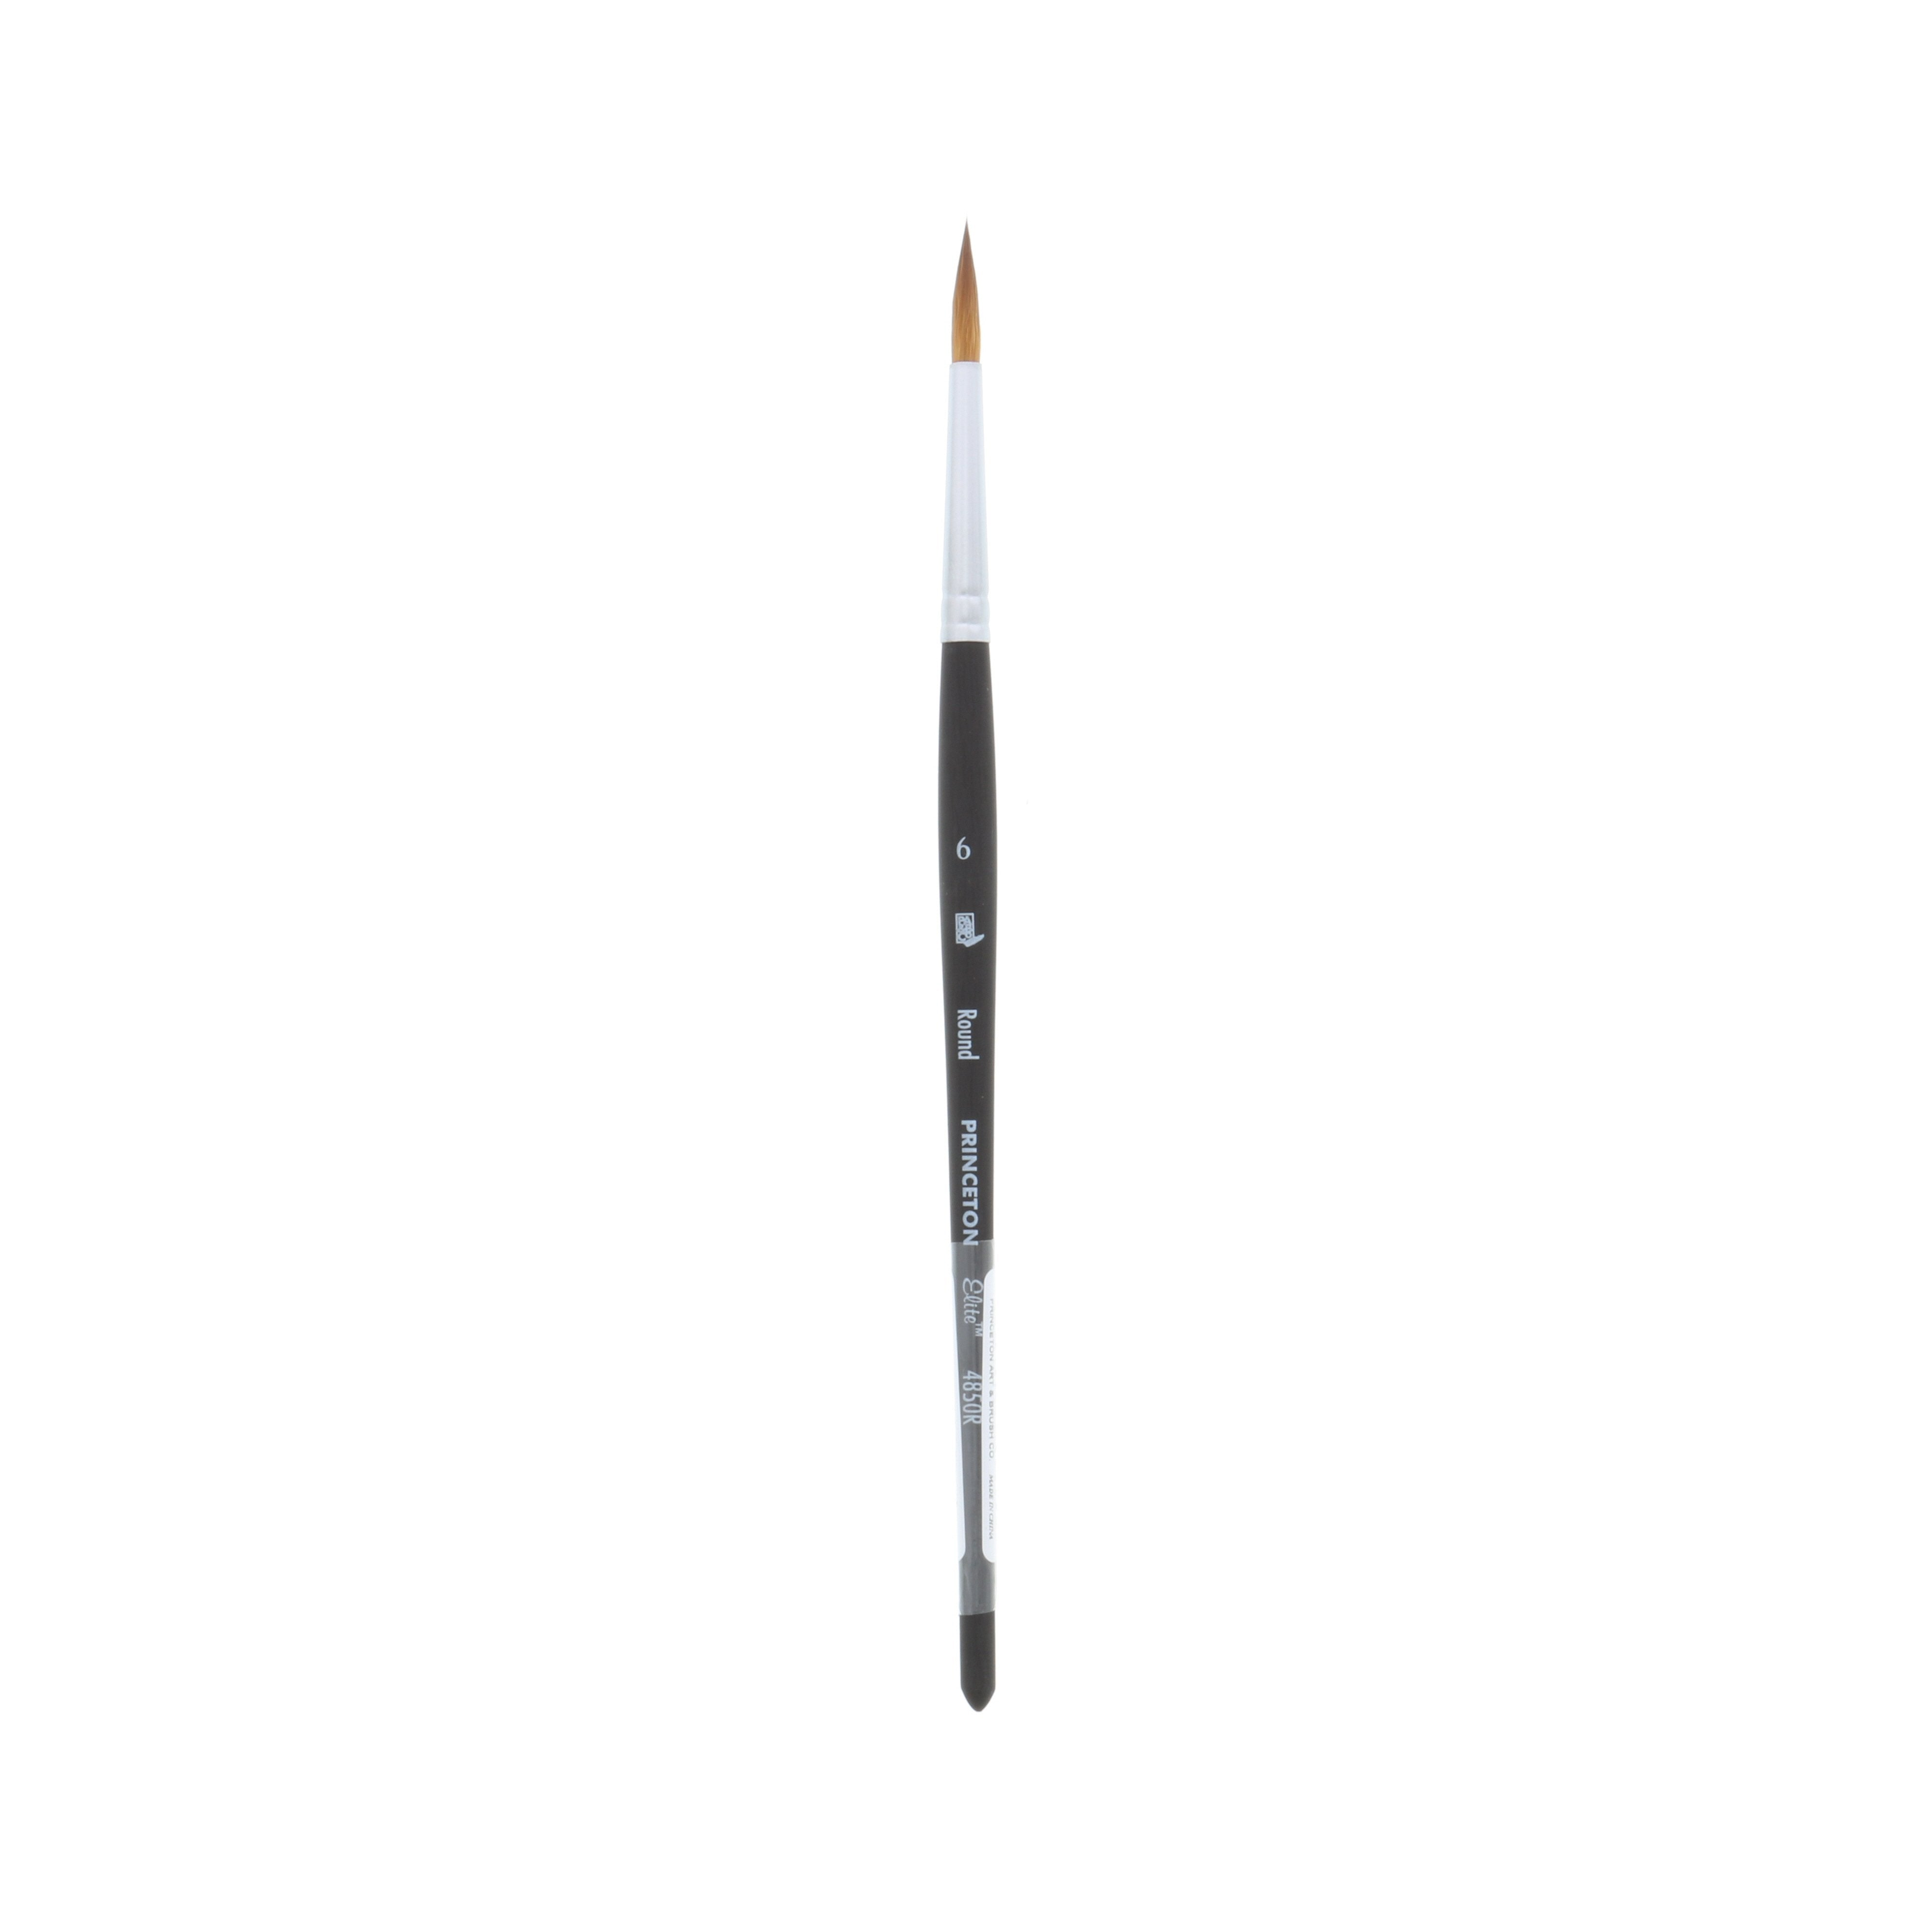 Princeton Brush Elite Synthetic Kolinsky Sable Watercolor Brush, Round, 6